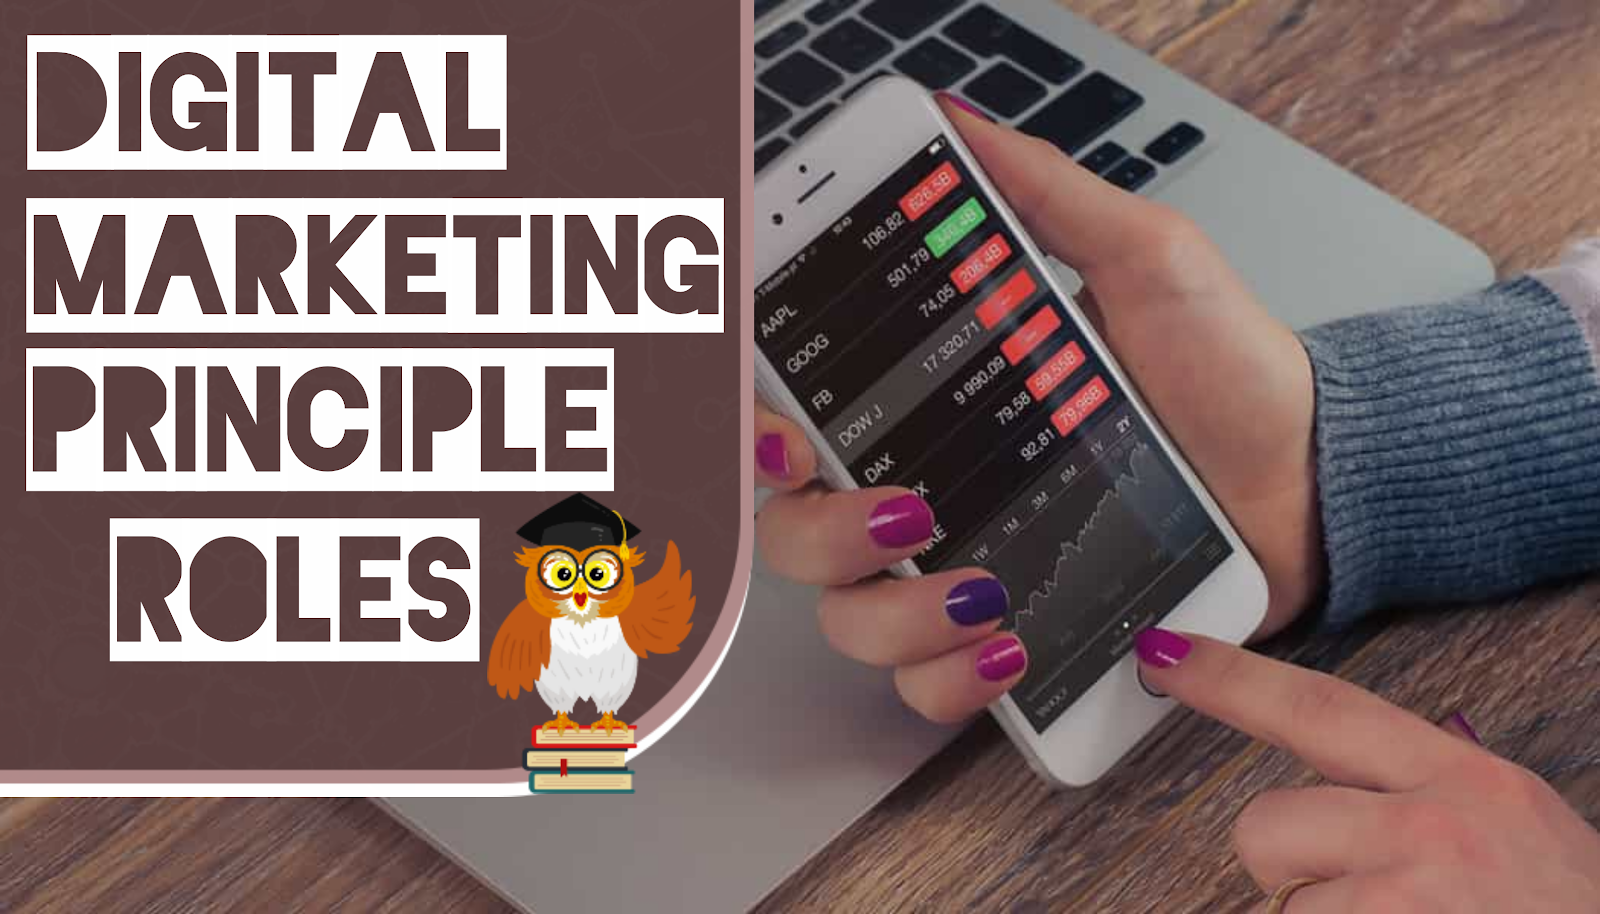 principle roles of digital marketing